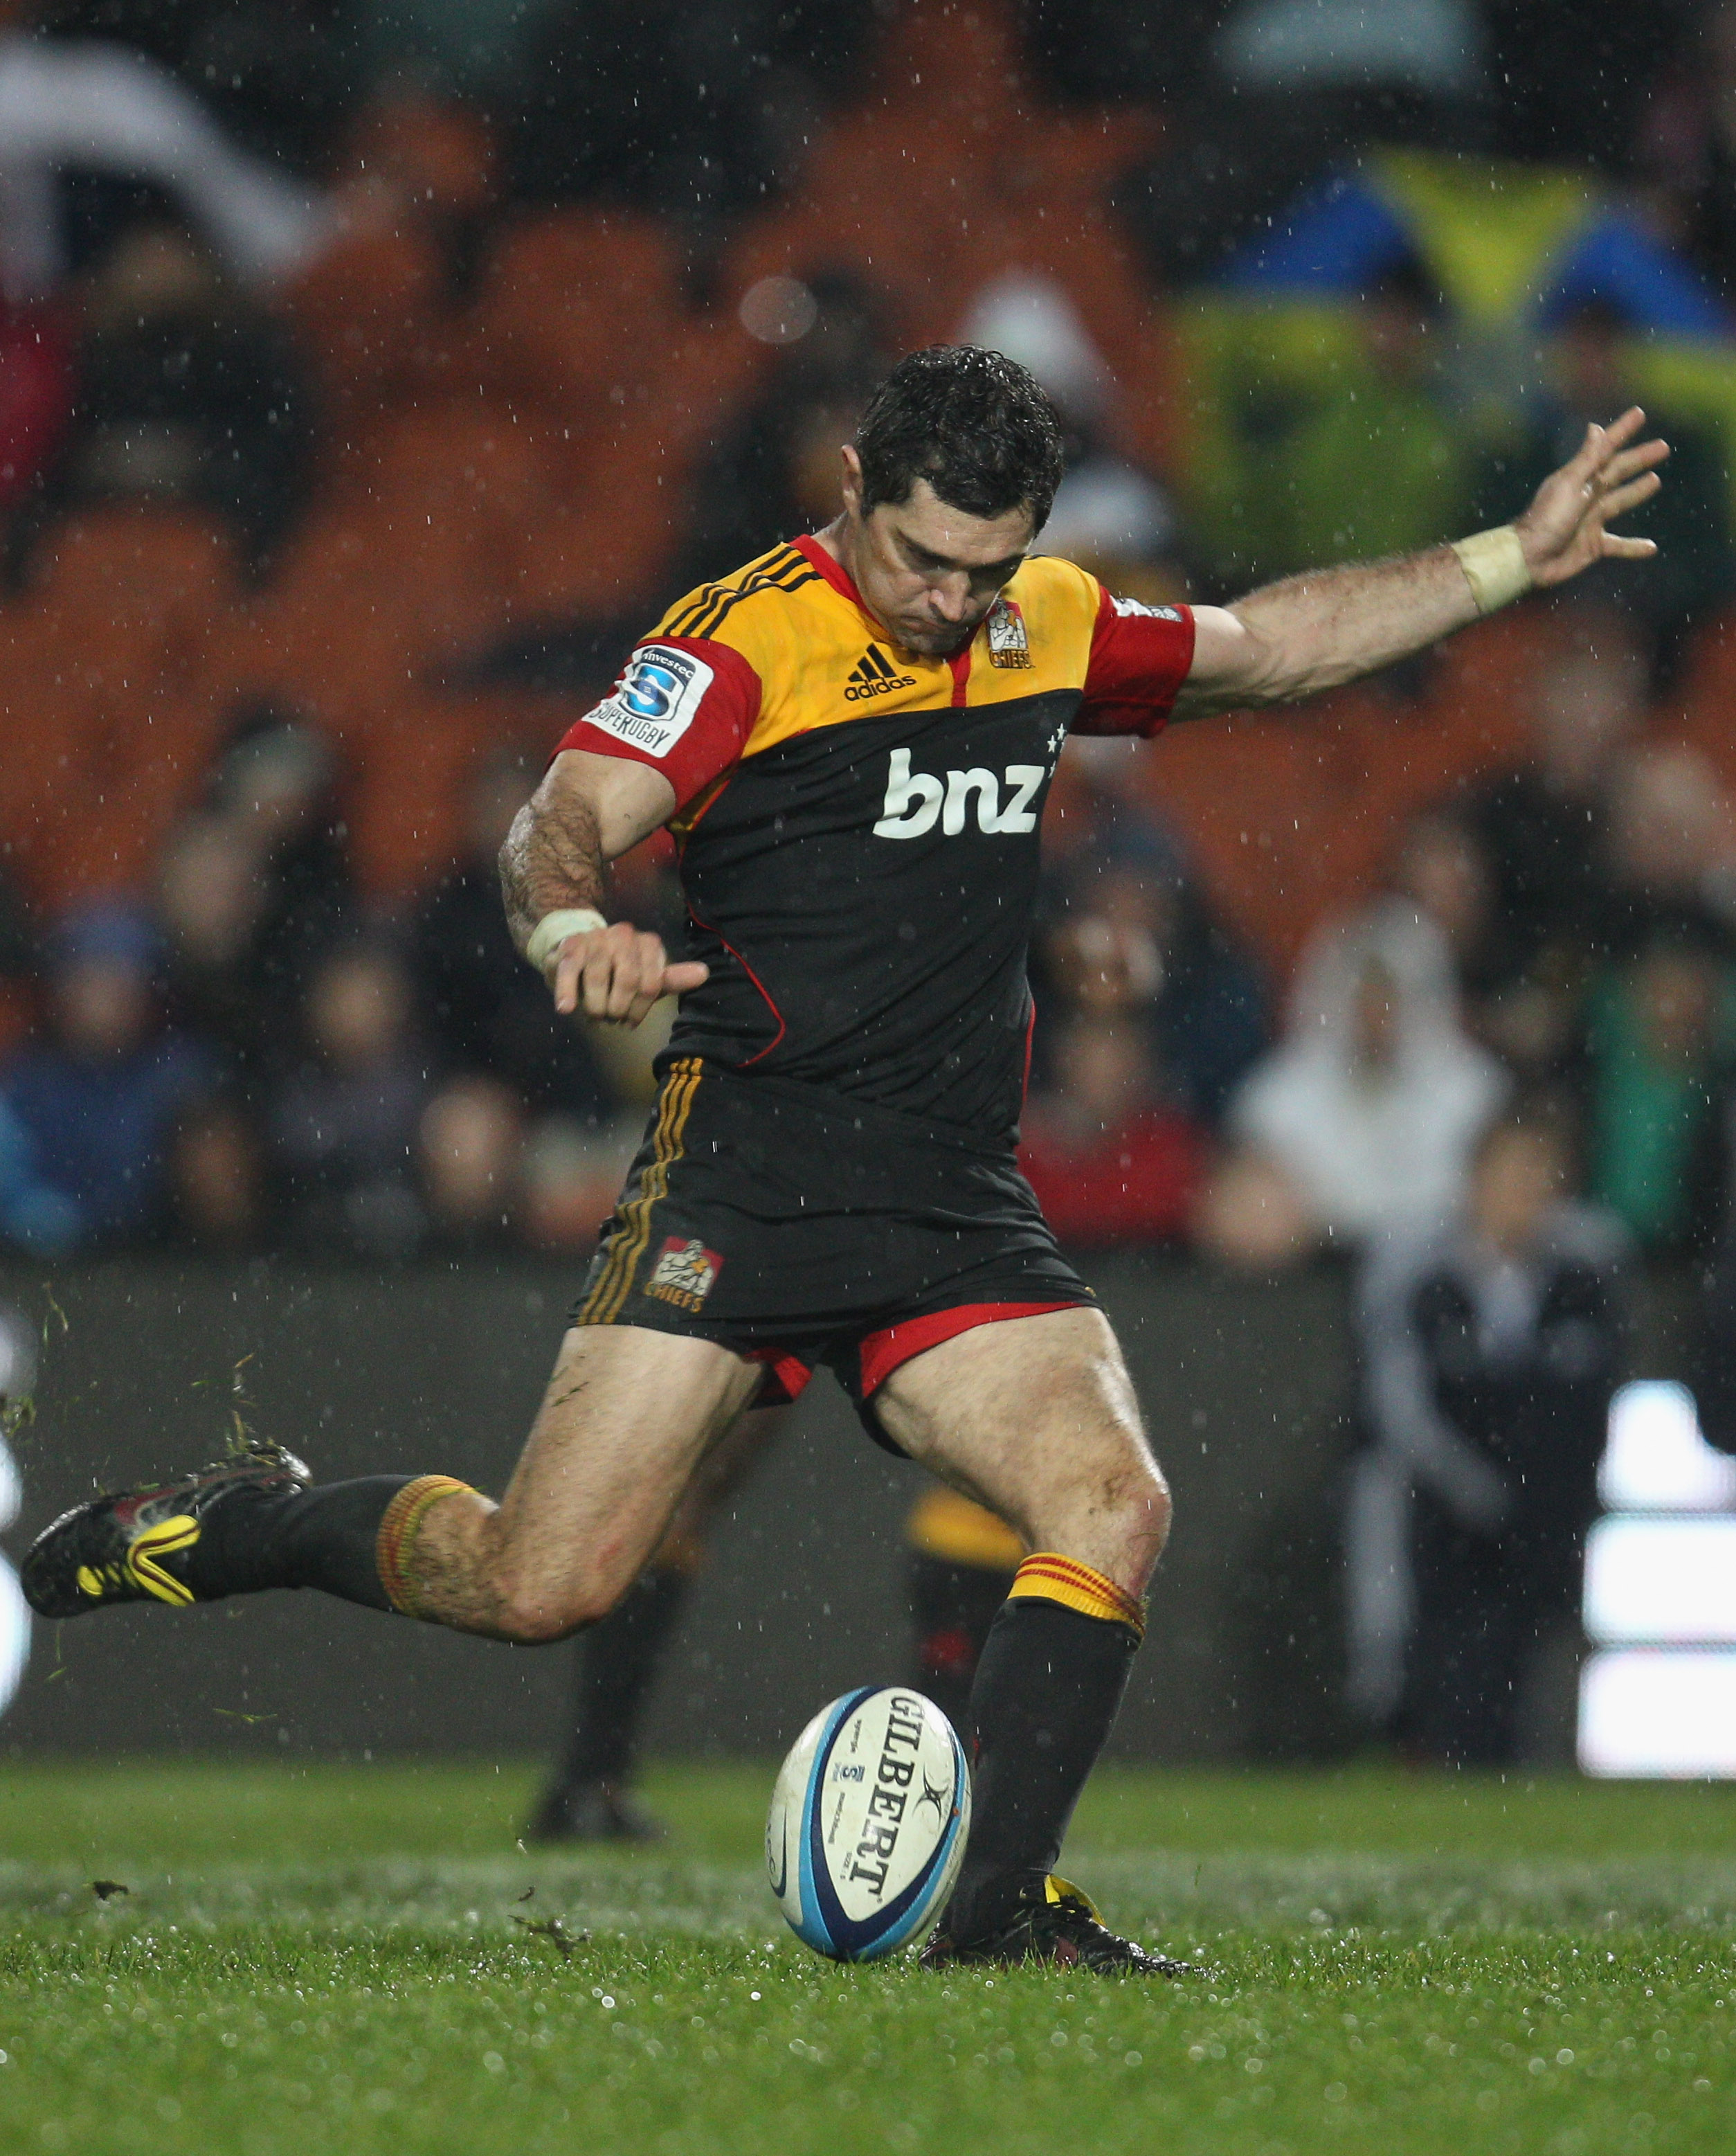 HAMILTON, NEW ZEALAND - JUNE 10: Stephen Donald of the Chiefs attempts a drop goal during the round 17 Super Rugby match between the Chiefs and the Hurricanes at Waikato Stadium on June 10, 2011 in Hamilton, New Zealand.  (Photo by Phil Walter/Getty Image